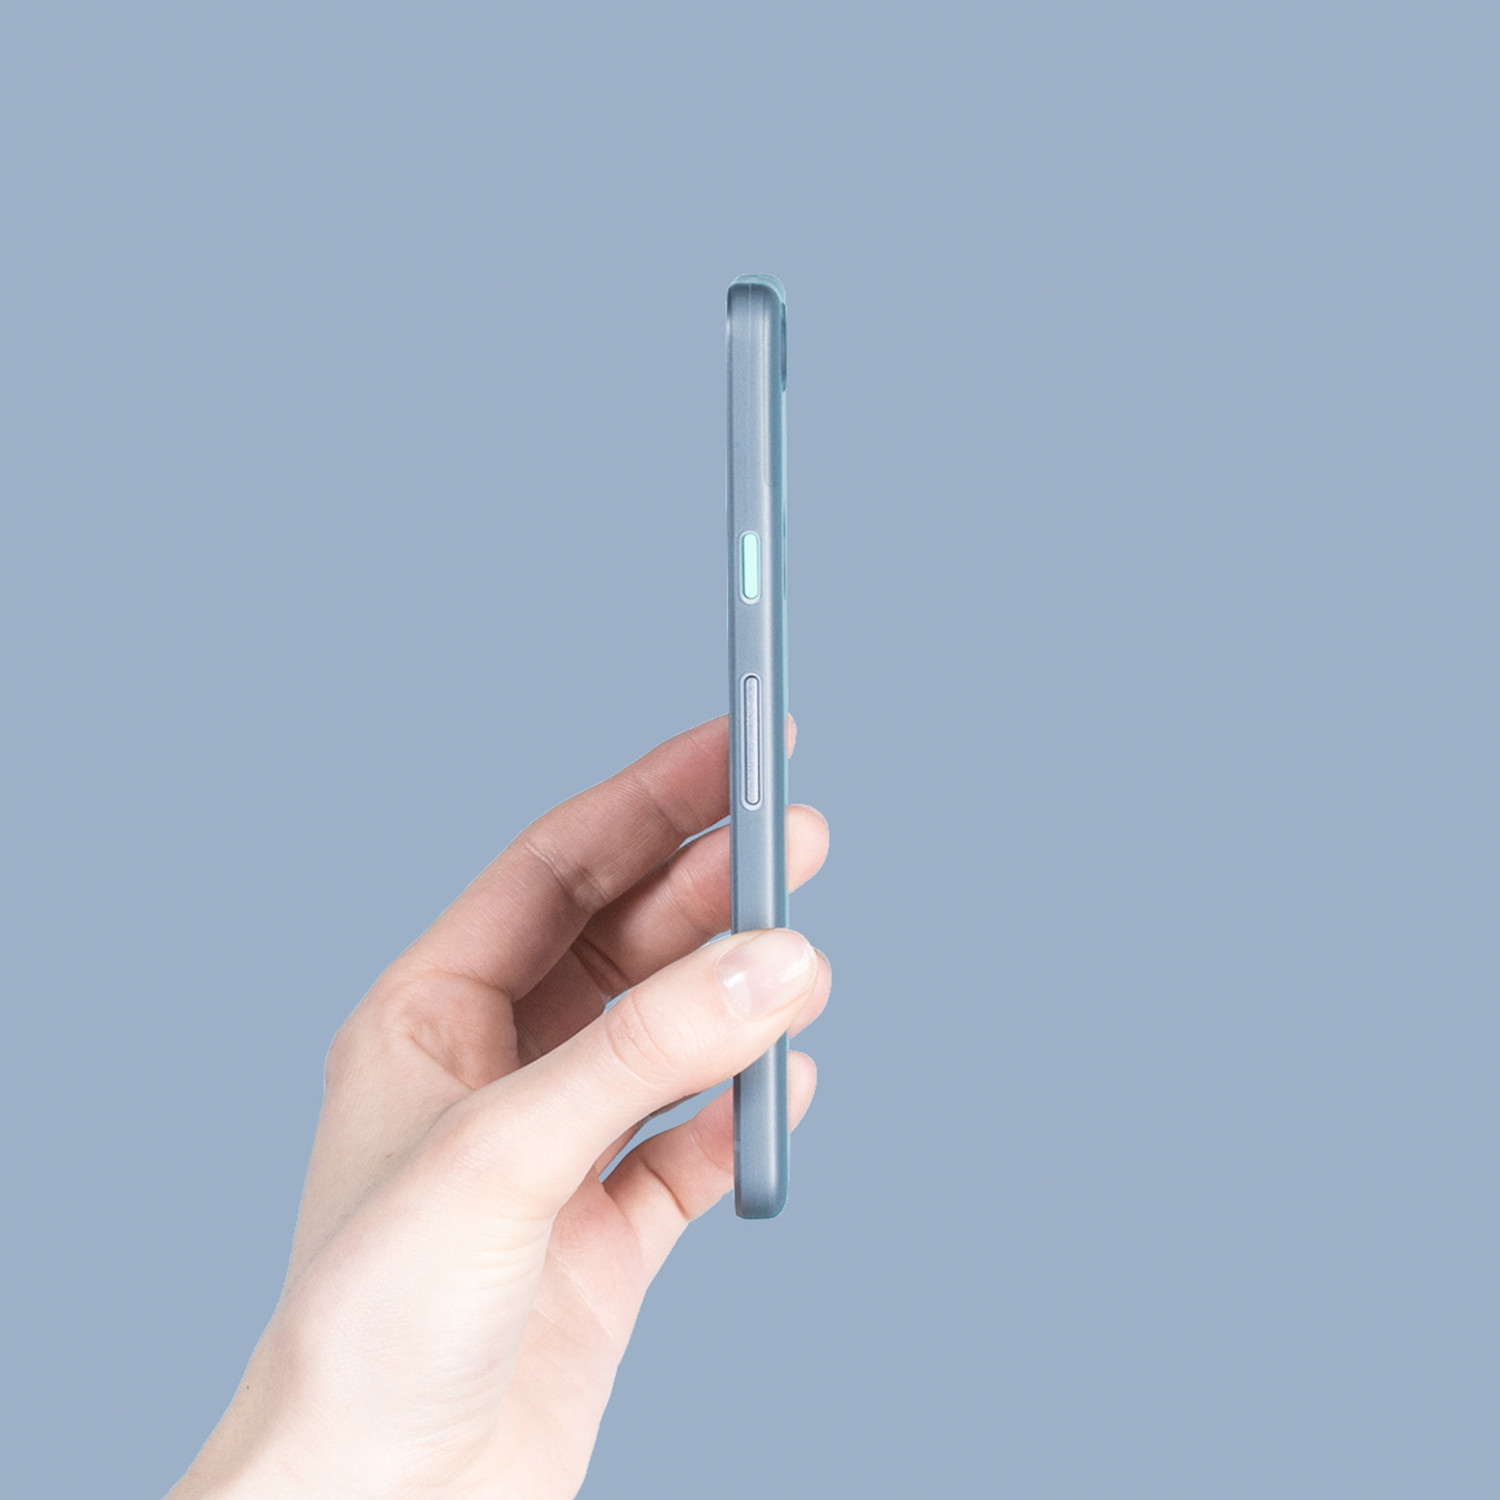 new product 0c9a3 9327d Peel Super Thin Phone Case // Pixel 2 (Kinda Blue) - Peel - Touch of ...